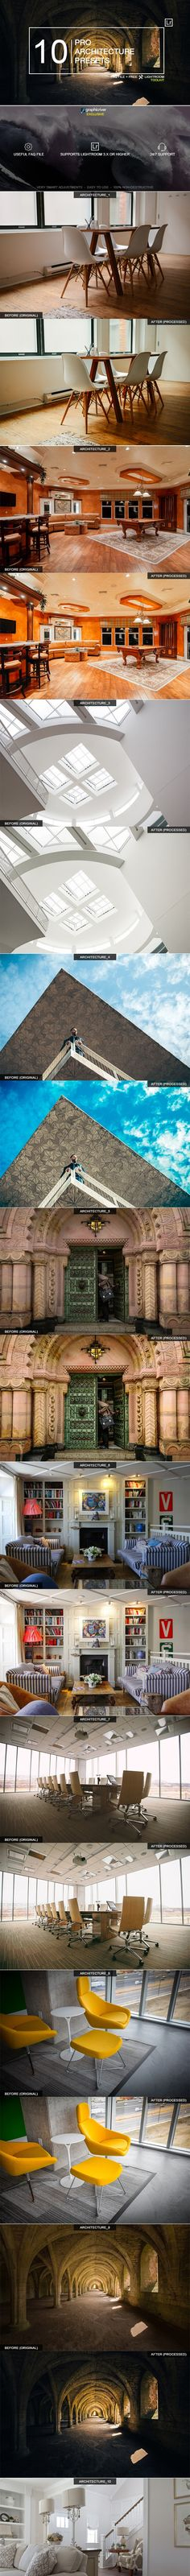 Buy 10 Pro Architecture Presets by zvolia on GraphicRiver. About 10 Pro Architecture Presets: This professional presets are designed to be used with interior and architecture .